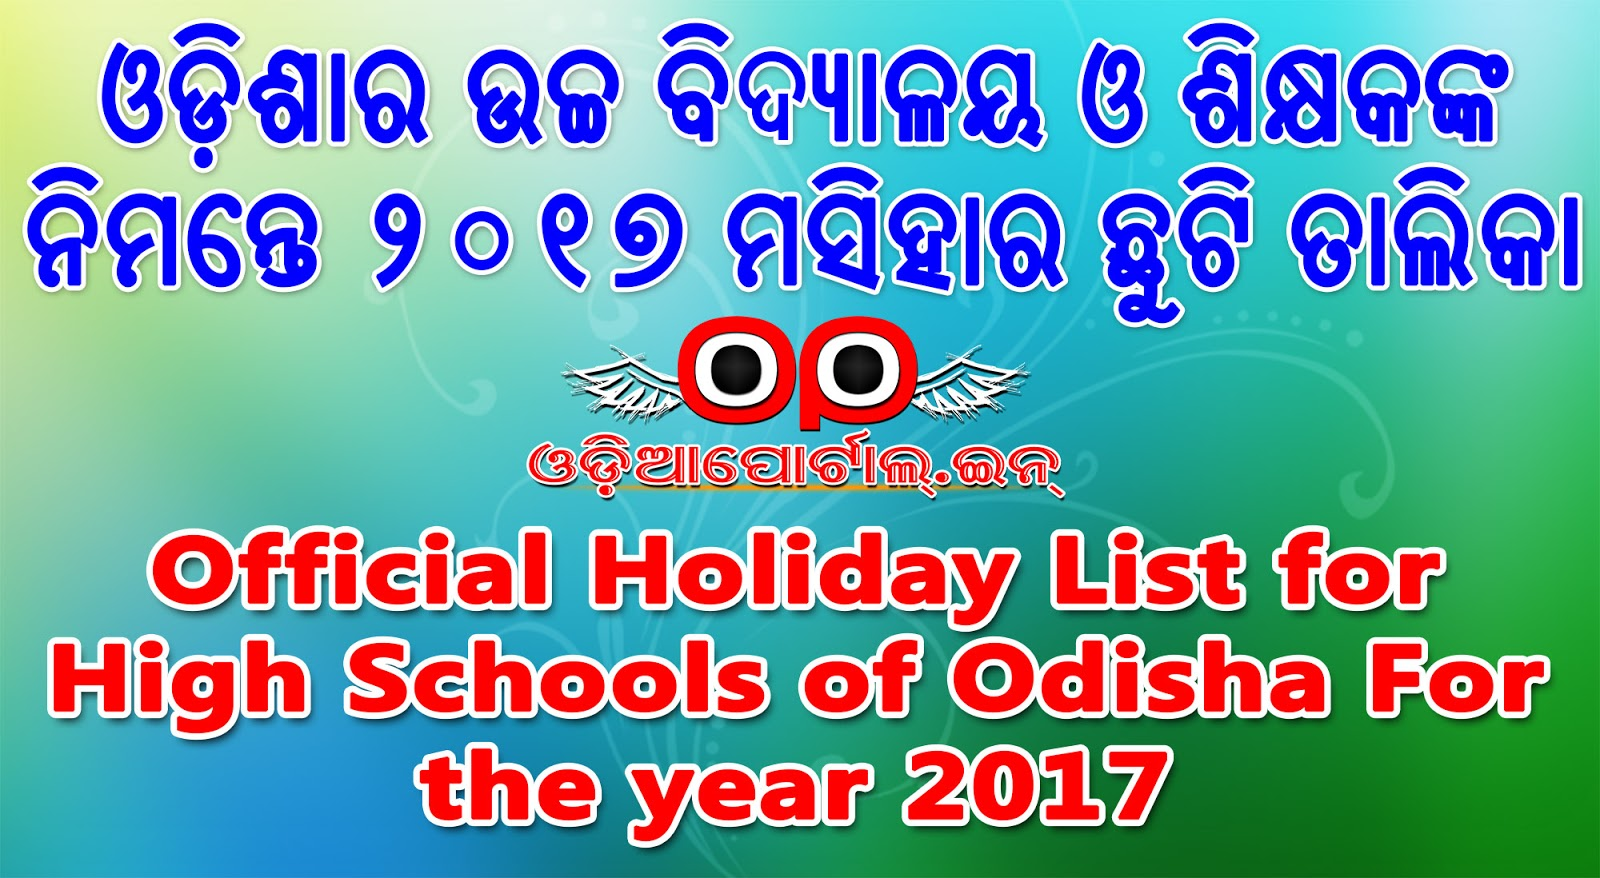 Pdf official holiday list for high schools of odisha for the year official holiday list for high schools of odisha for the year 2017 directorate of secondary sciox Images